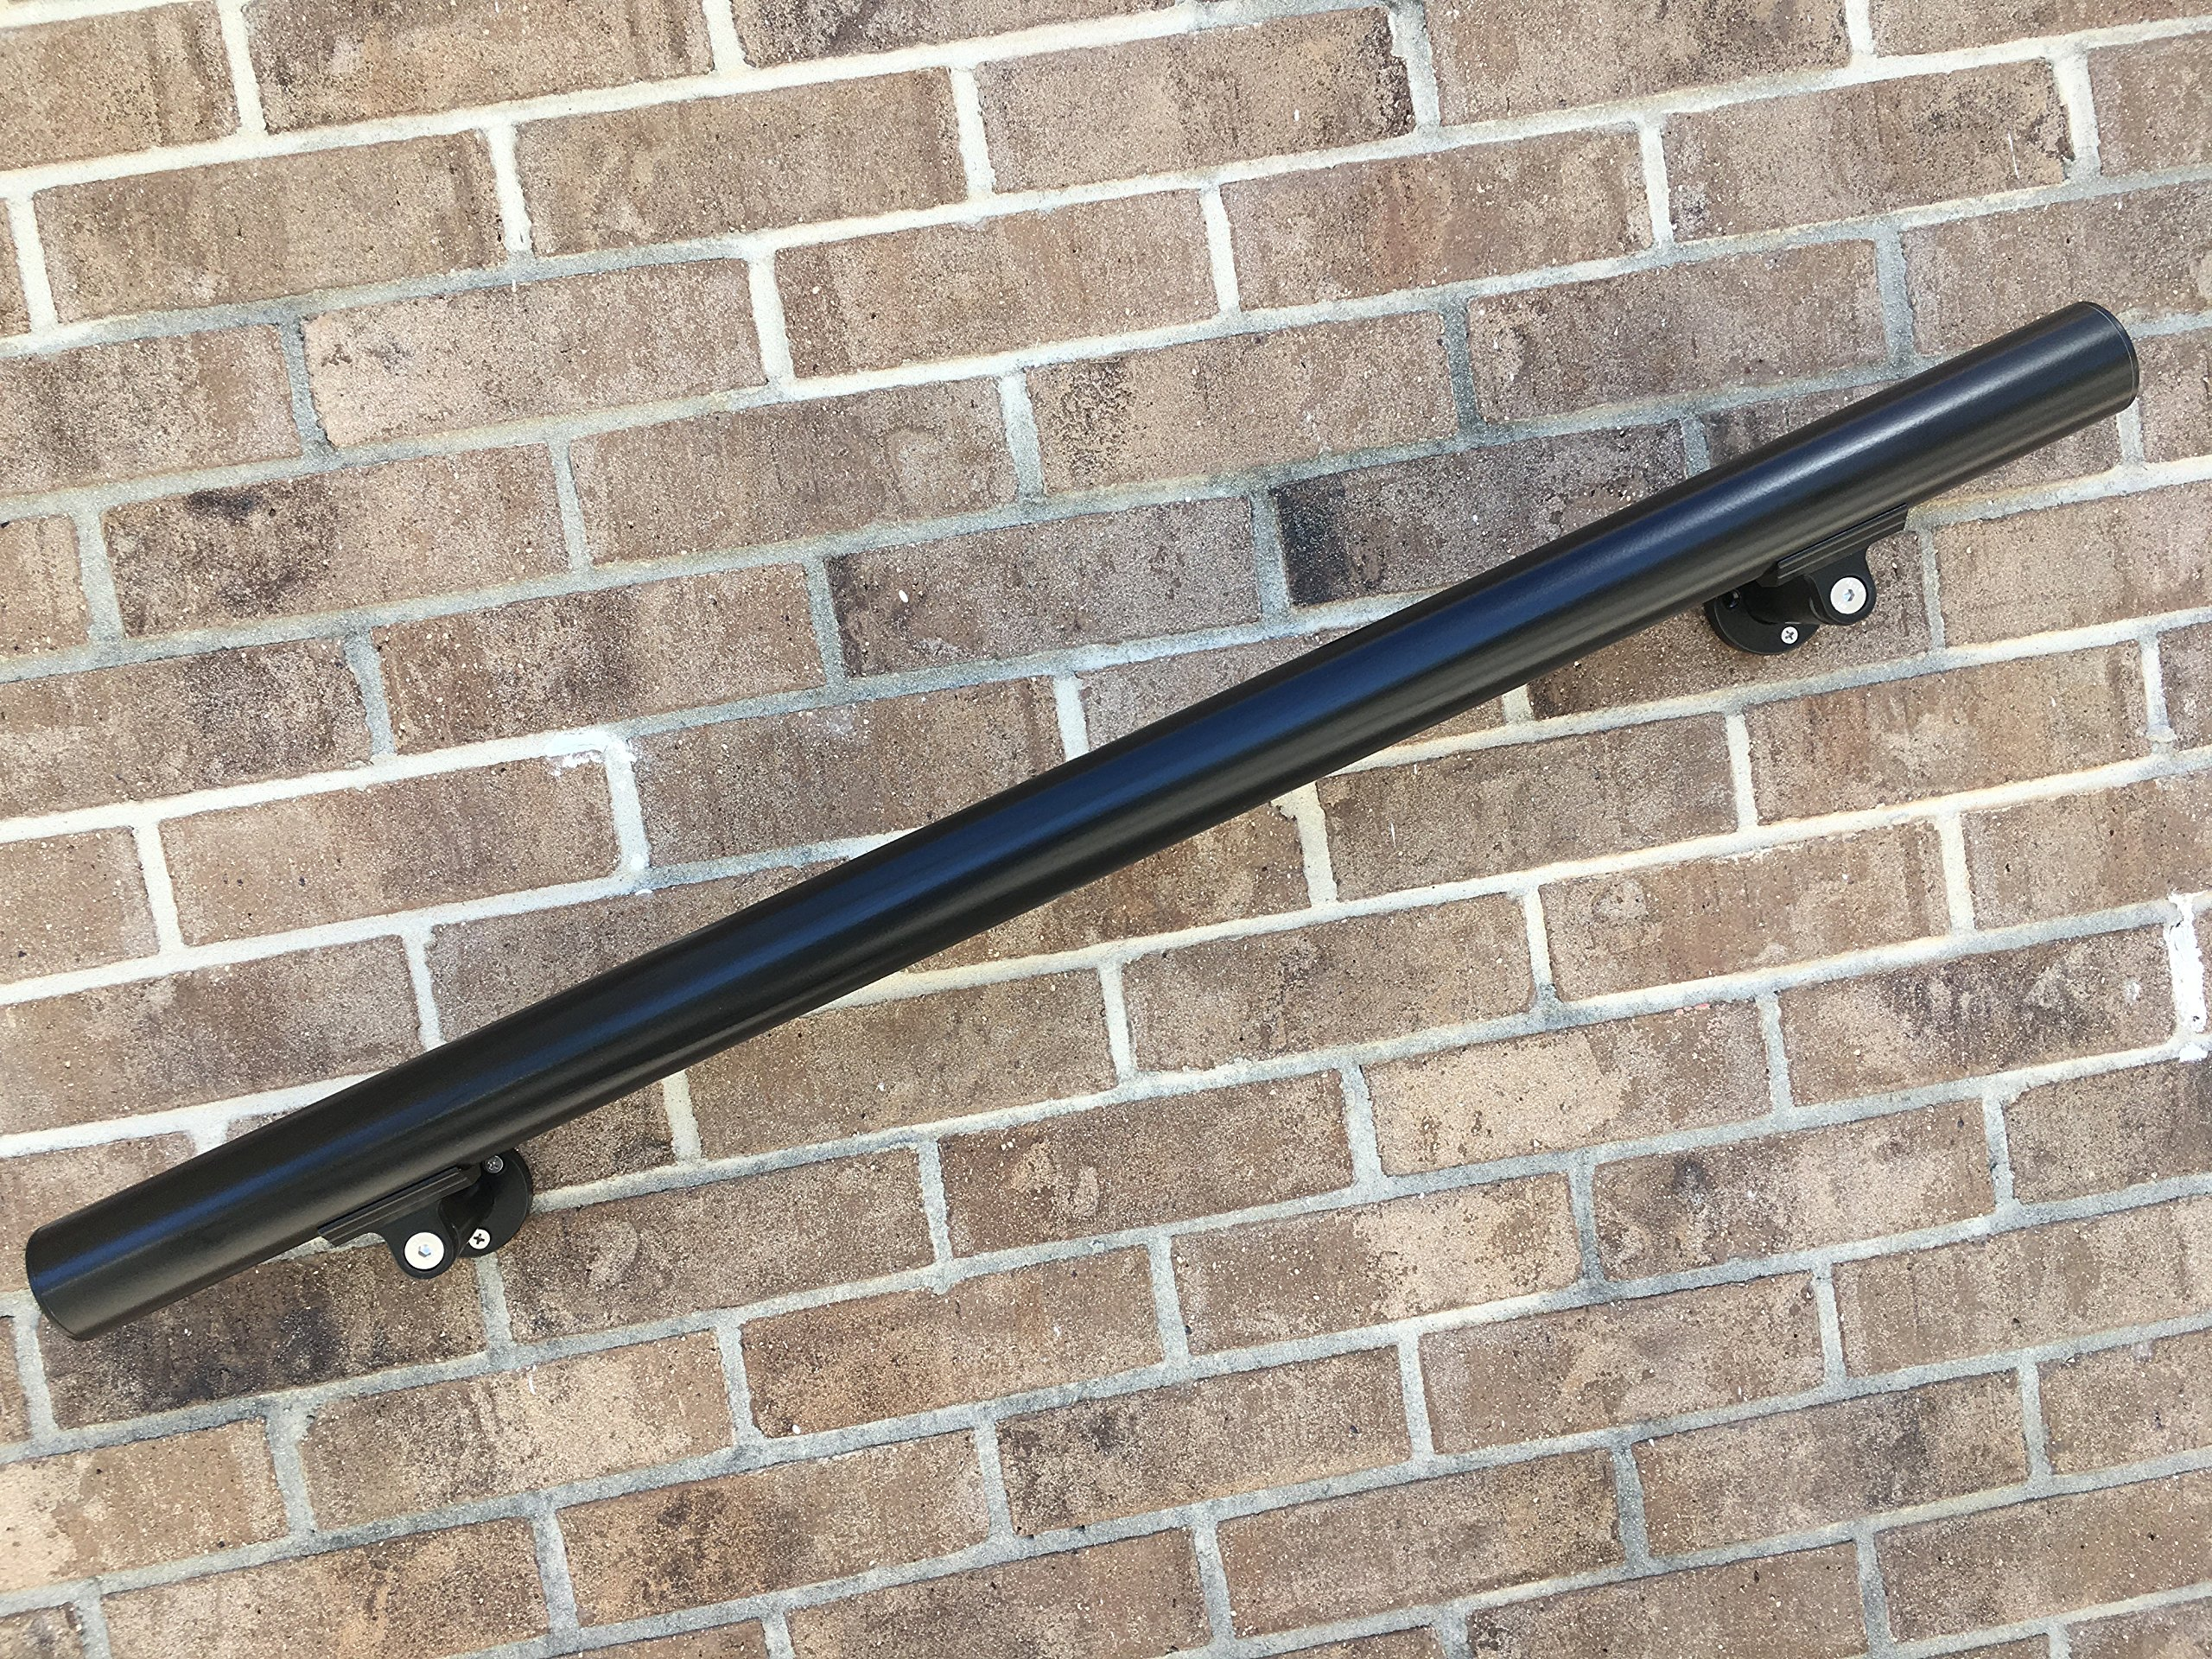 B52 Black Handrail Aluminum Stairs Kit 7 Ft and 1.97''diam, Includes 3 Wall Brackets. by Aress Corporation